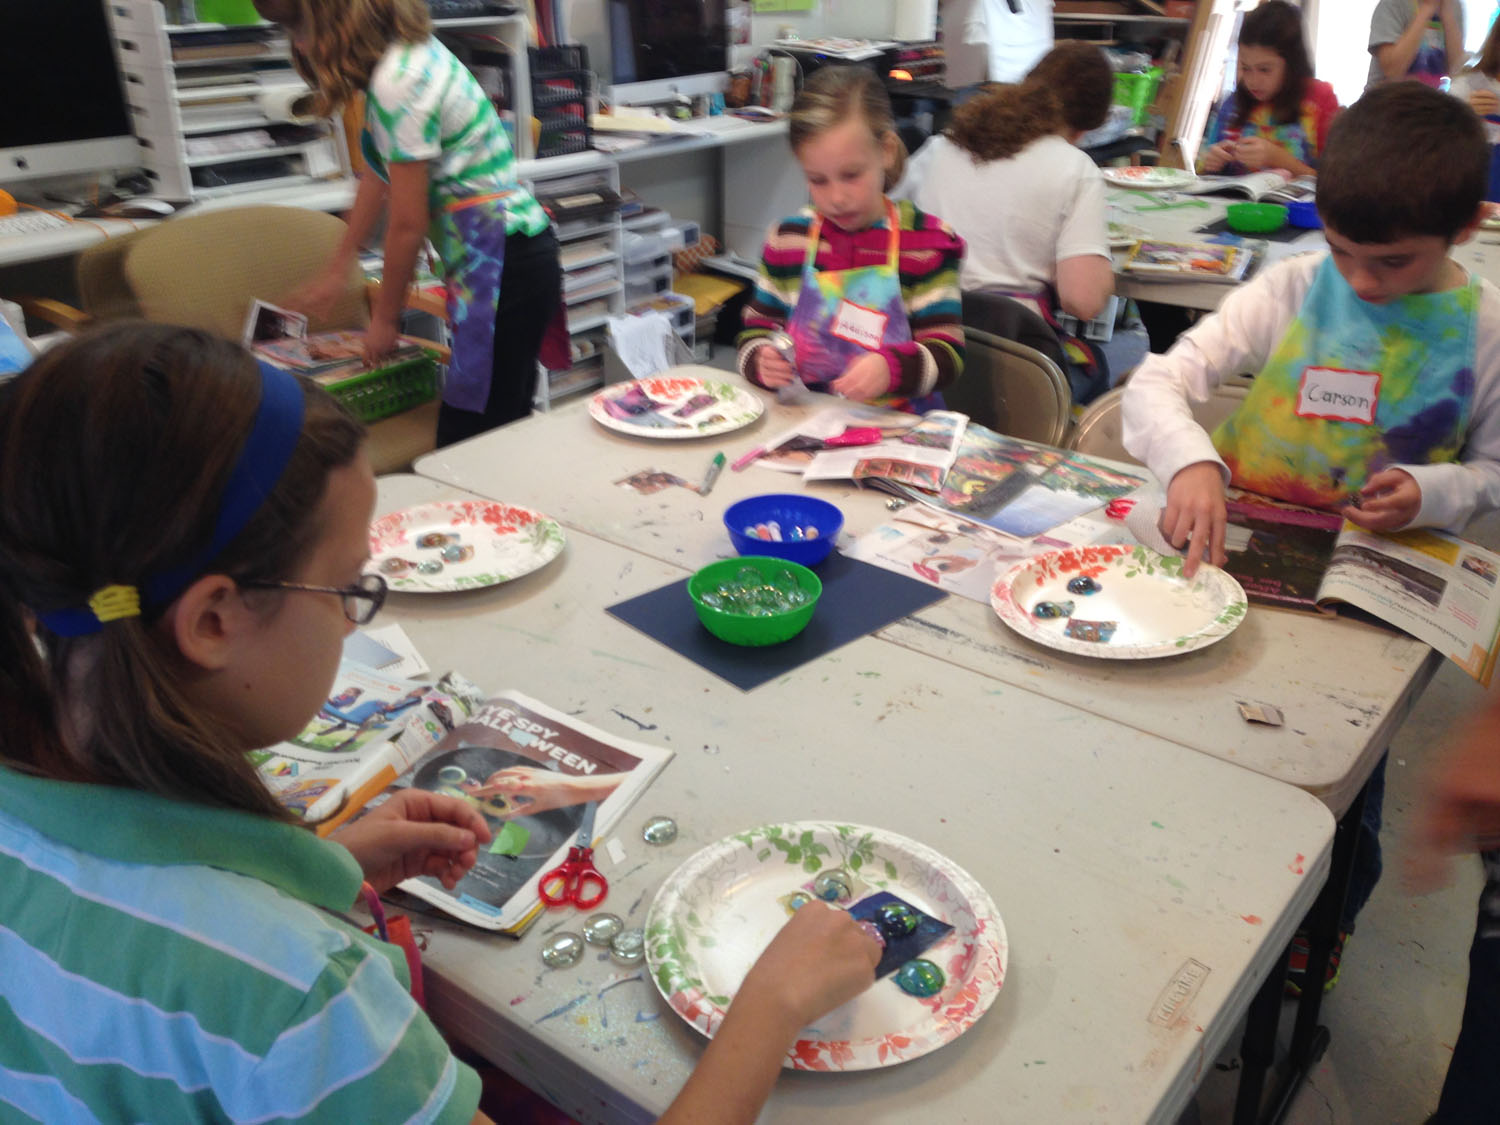 kids-working-on-camp-projects-at-art-by-tjm-studio-img_7146.jpg